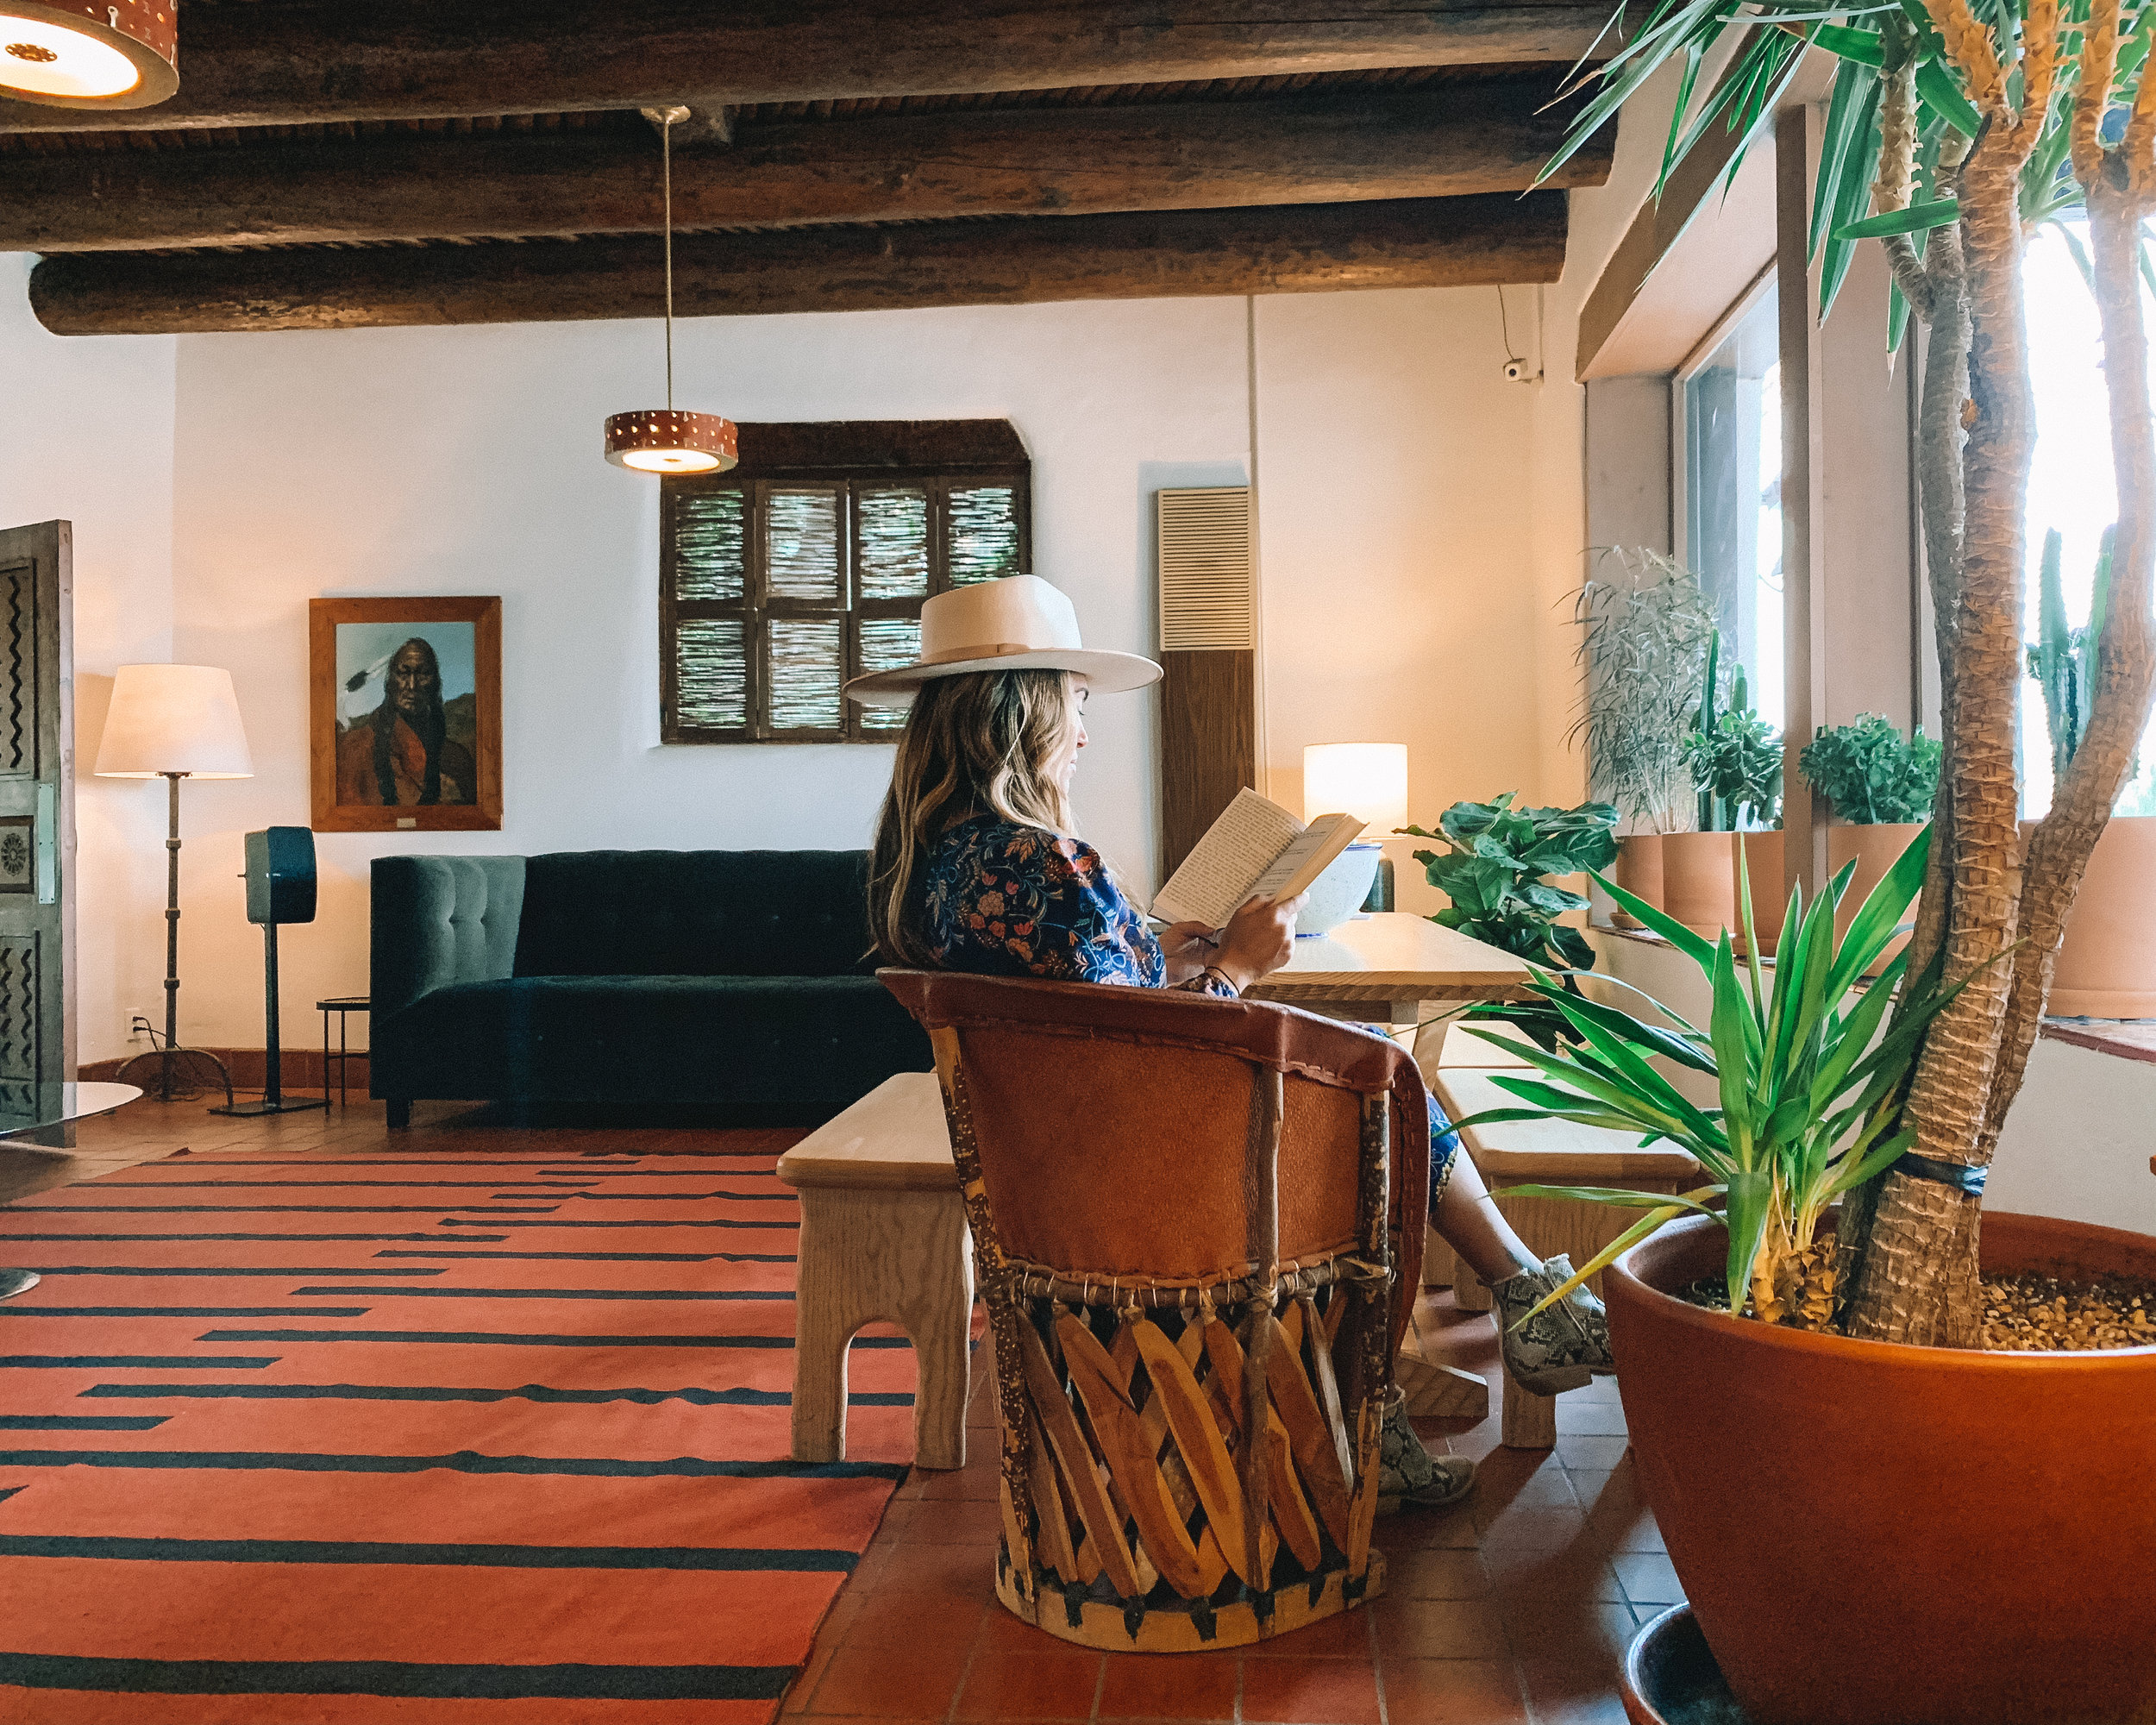 take time for some leisurely reading in an El Rey Court common space